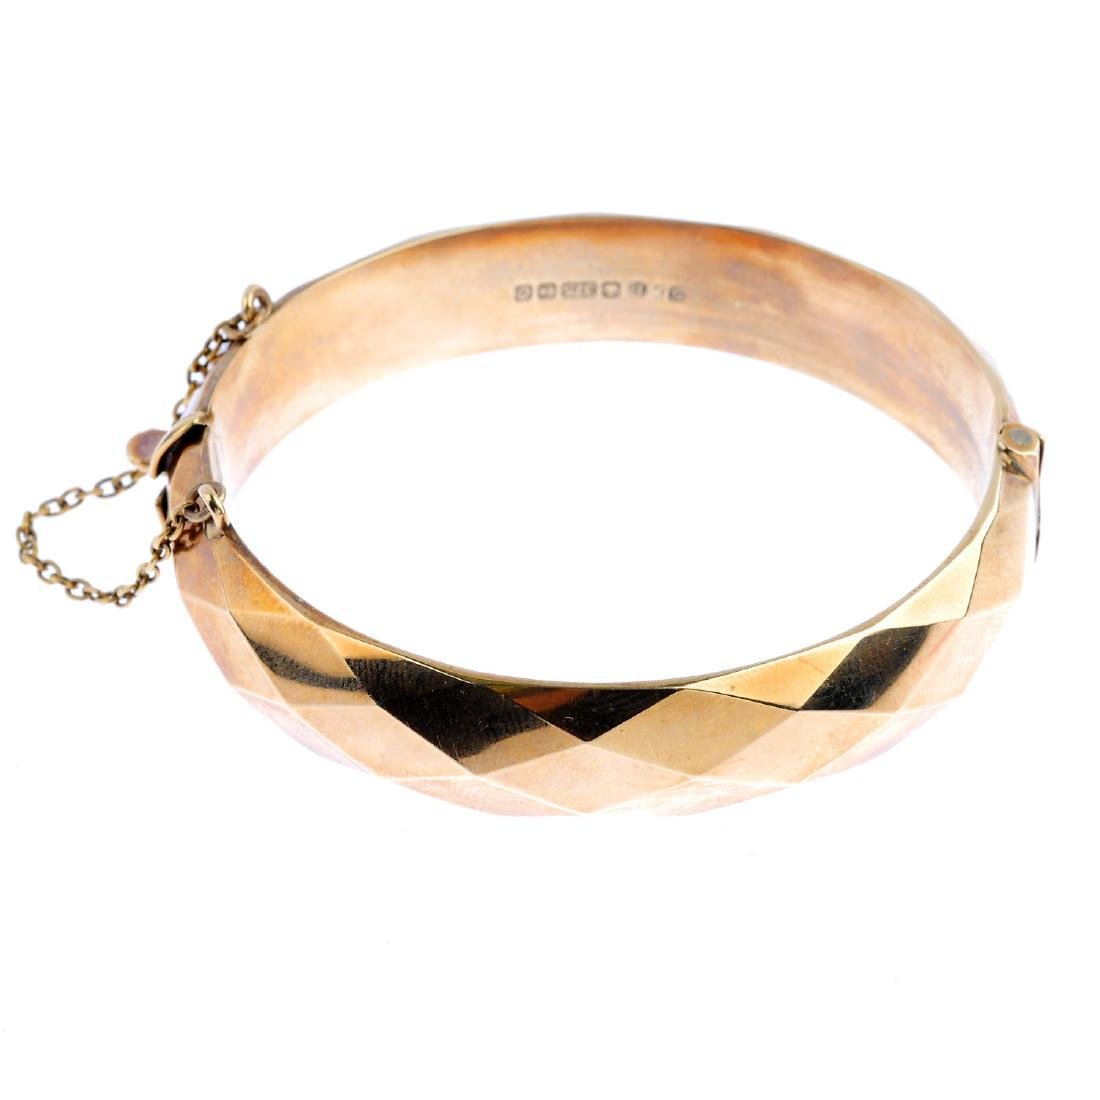 A 9ct gold hinged bangle. The geometric front, with